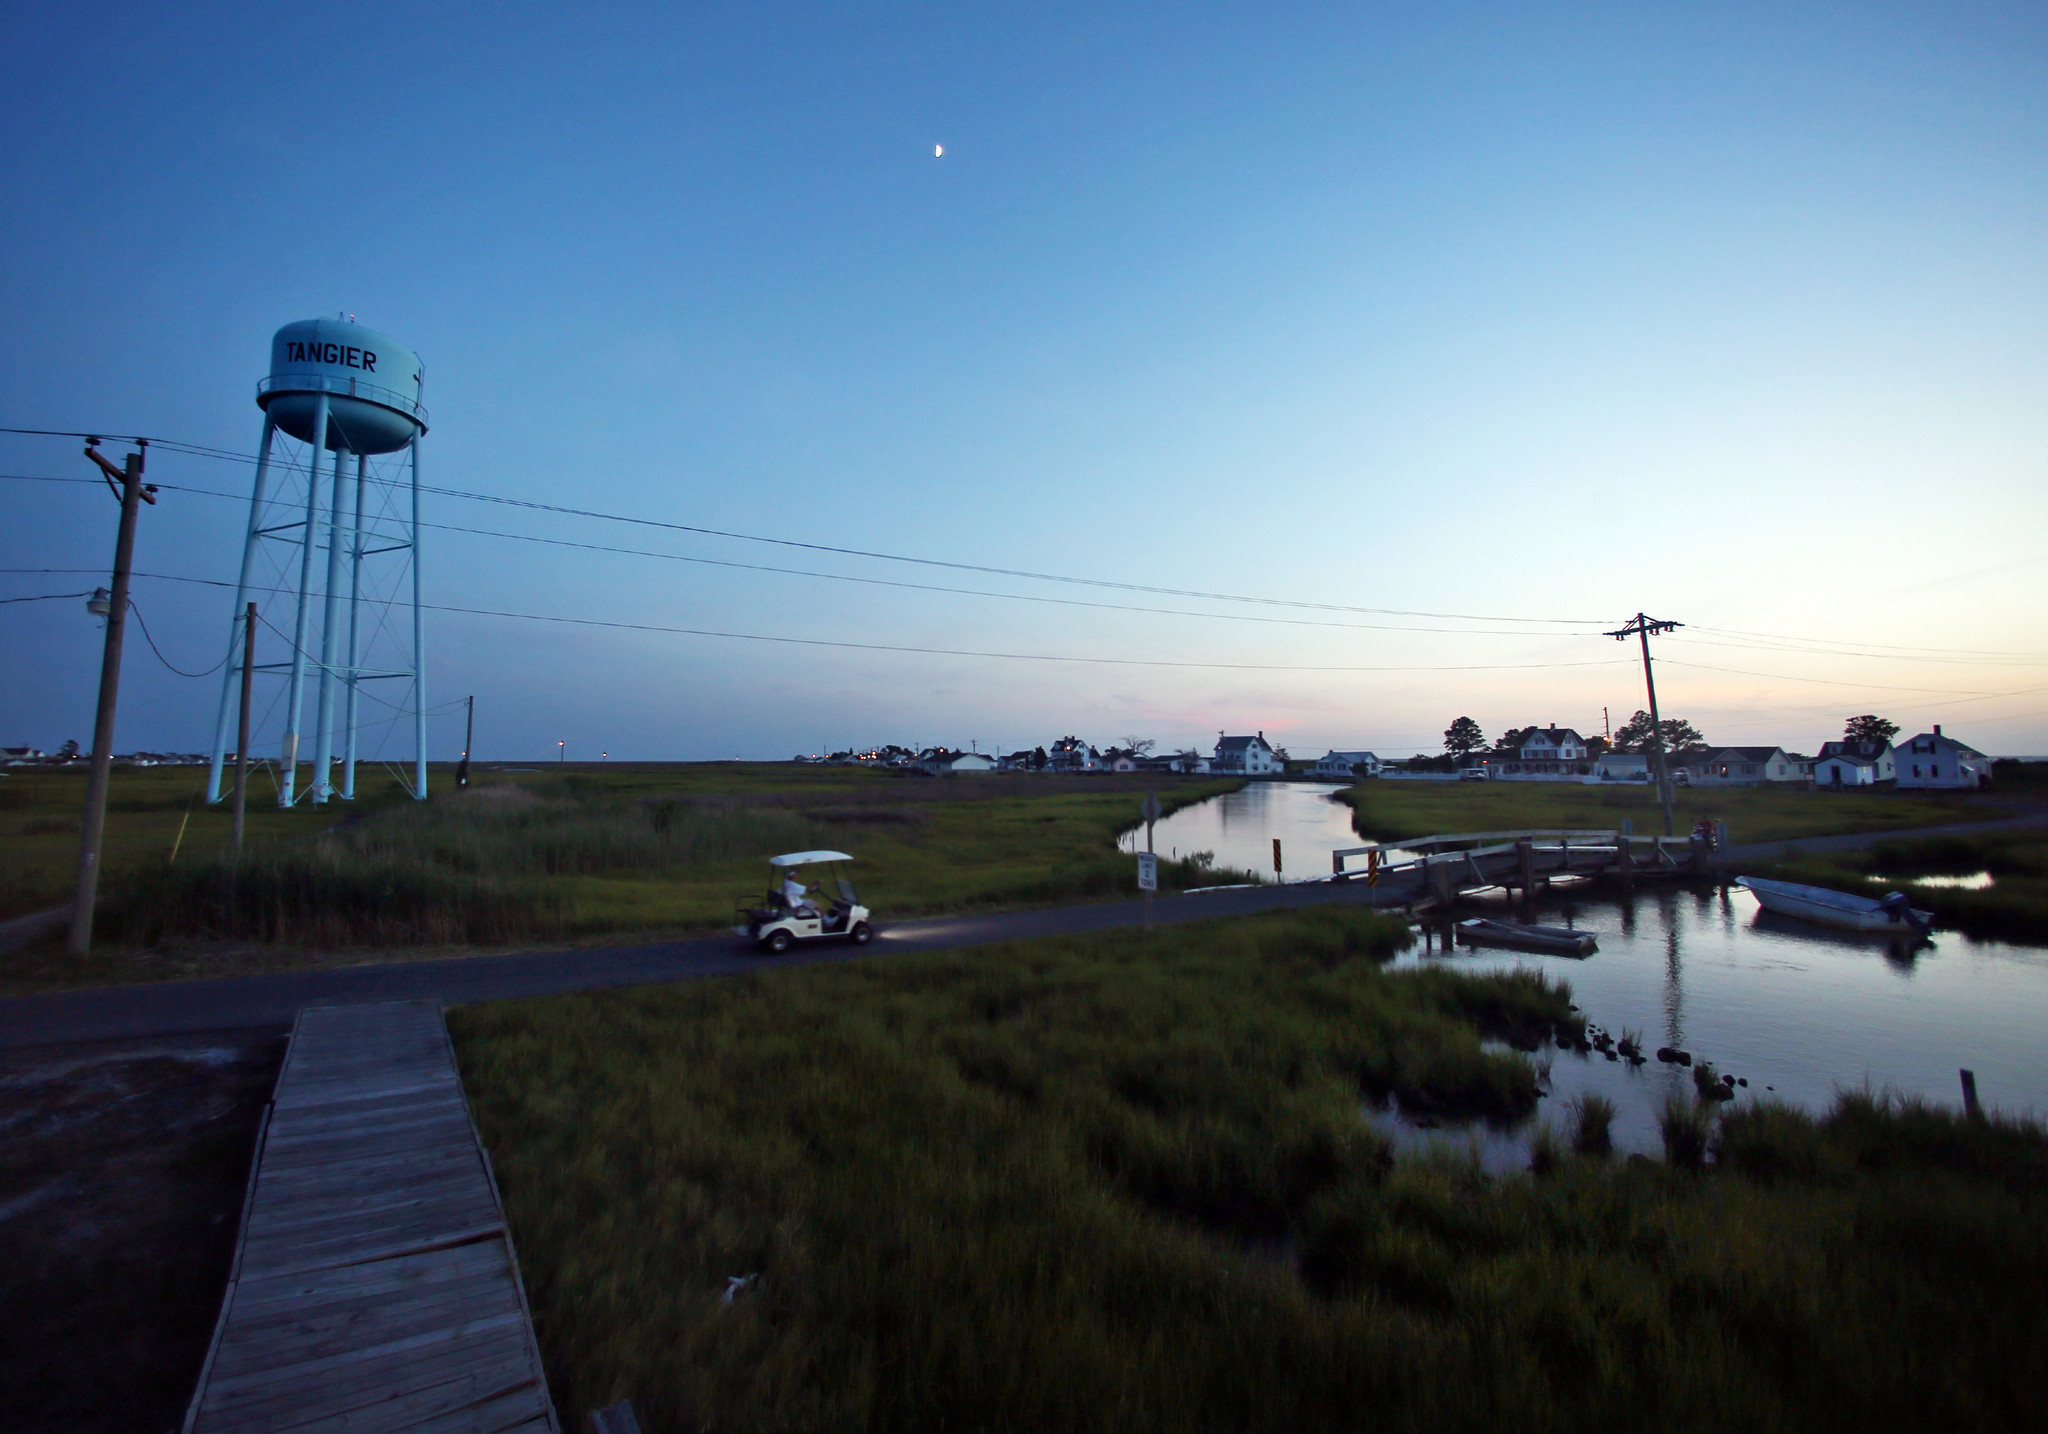 dp-tangier-island-at-risk-of-disappearing-without-quick-action-experts-say-20160916.jpg